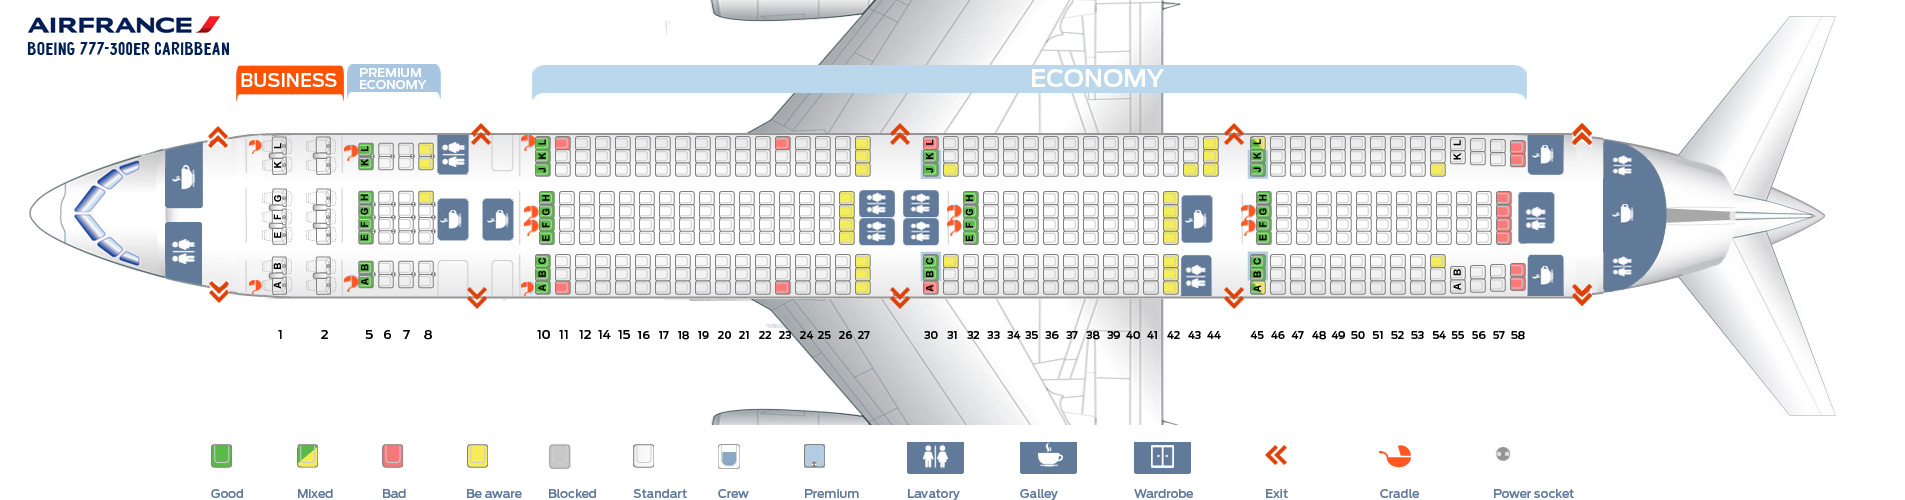 Boeing 777 300er seating chart air france for Interieur boeing 777 300er air france